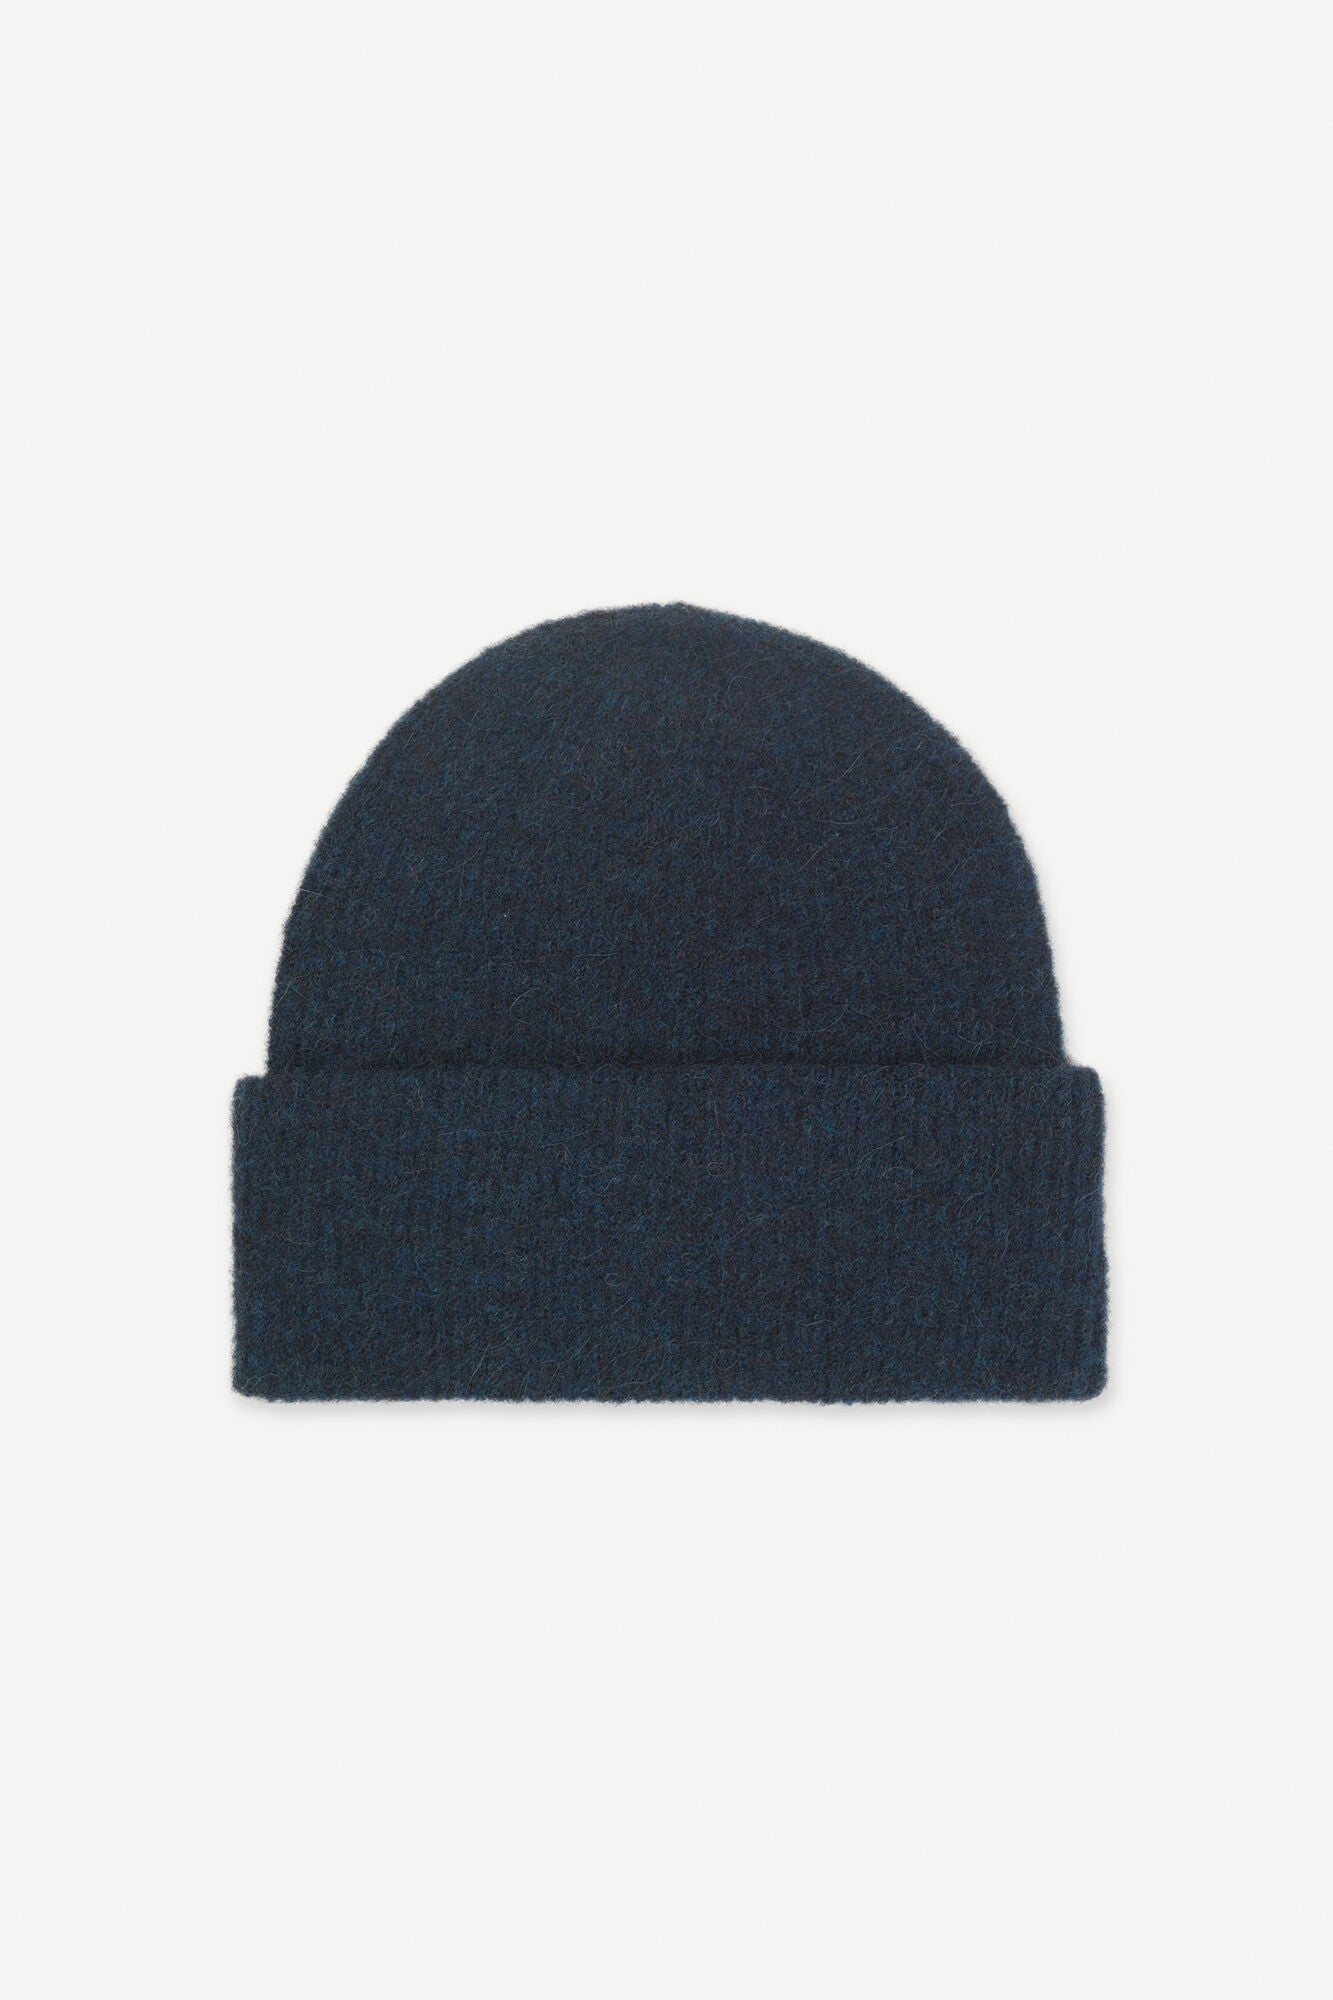 Nor hat 7355 - Dark Blue